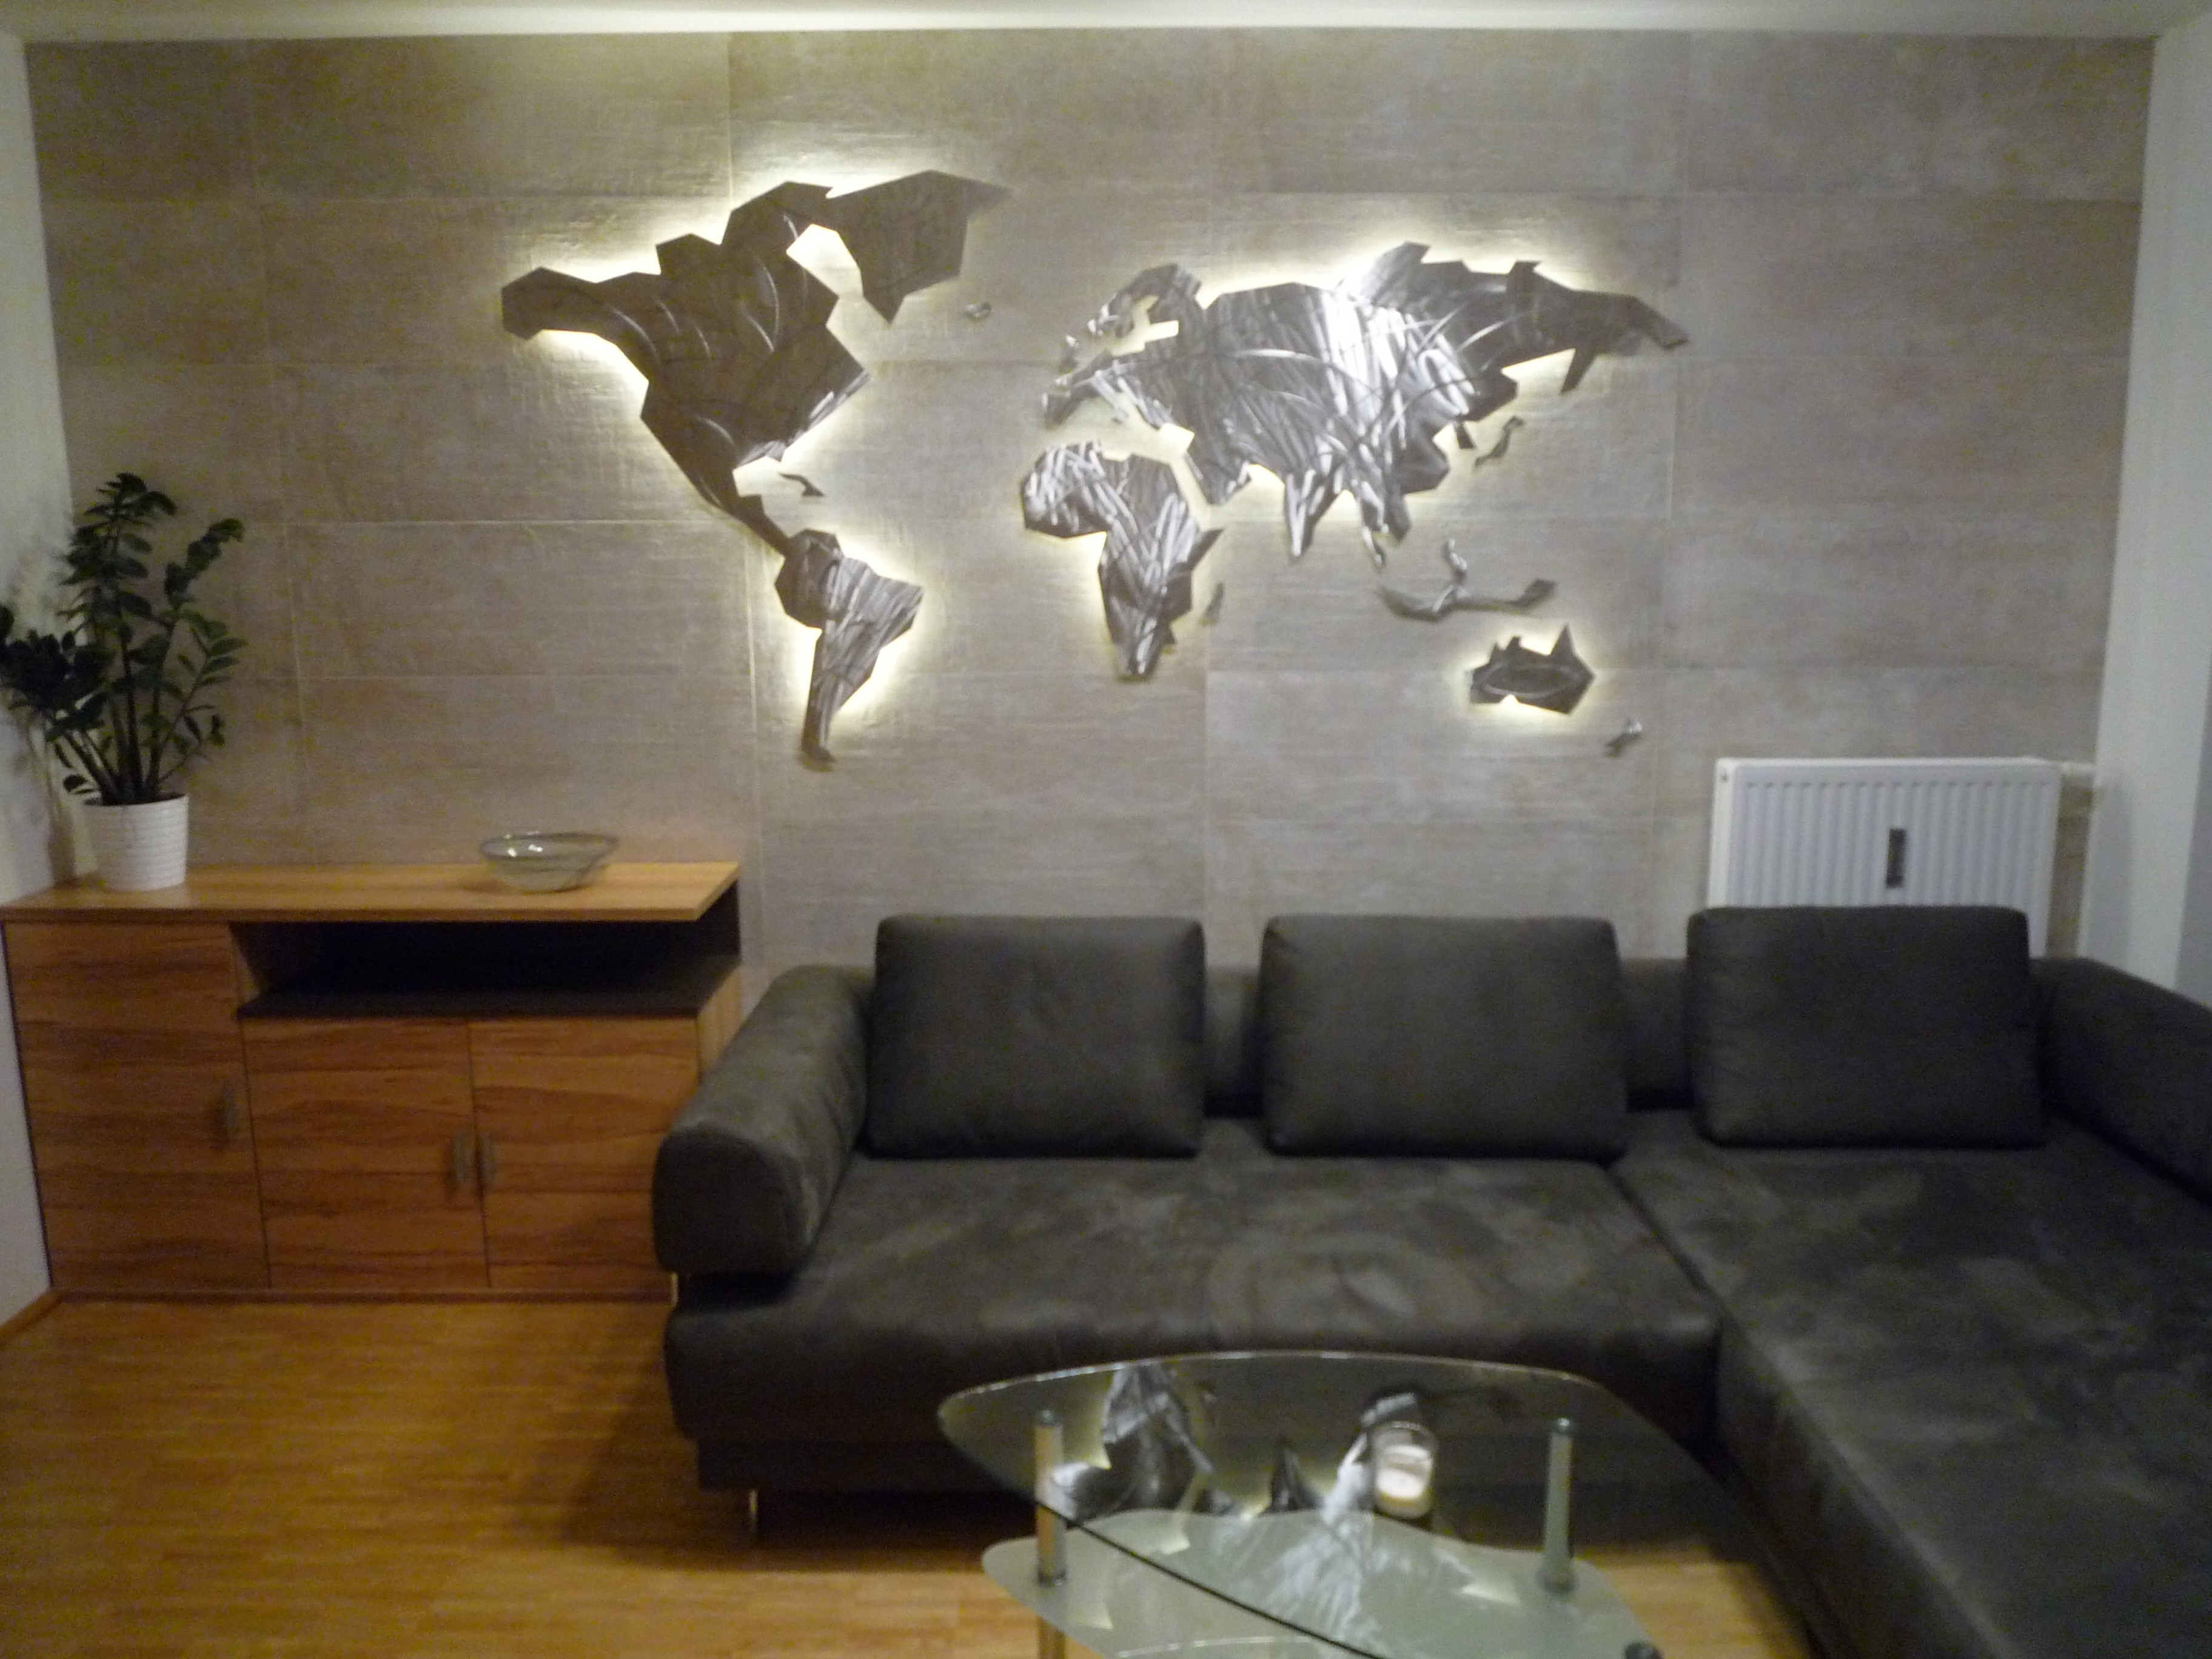 39 Inspirational World Map Wall Art Framed Design Ideas Of Led Wall Pertaining To Led Wall Art (Photo 18 of 20)